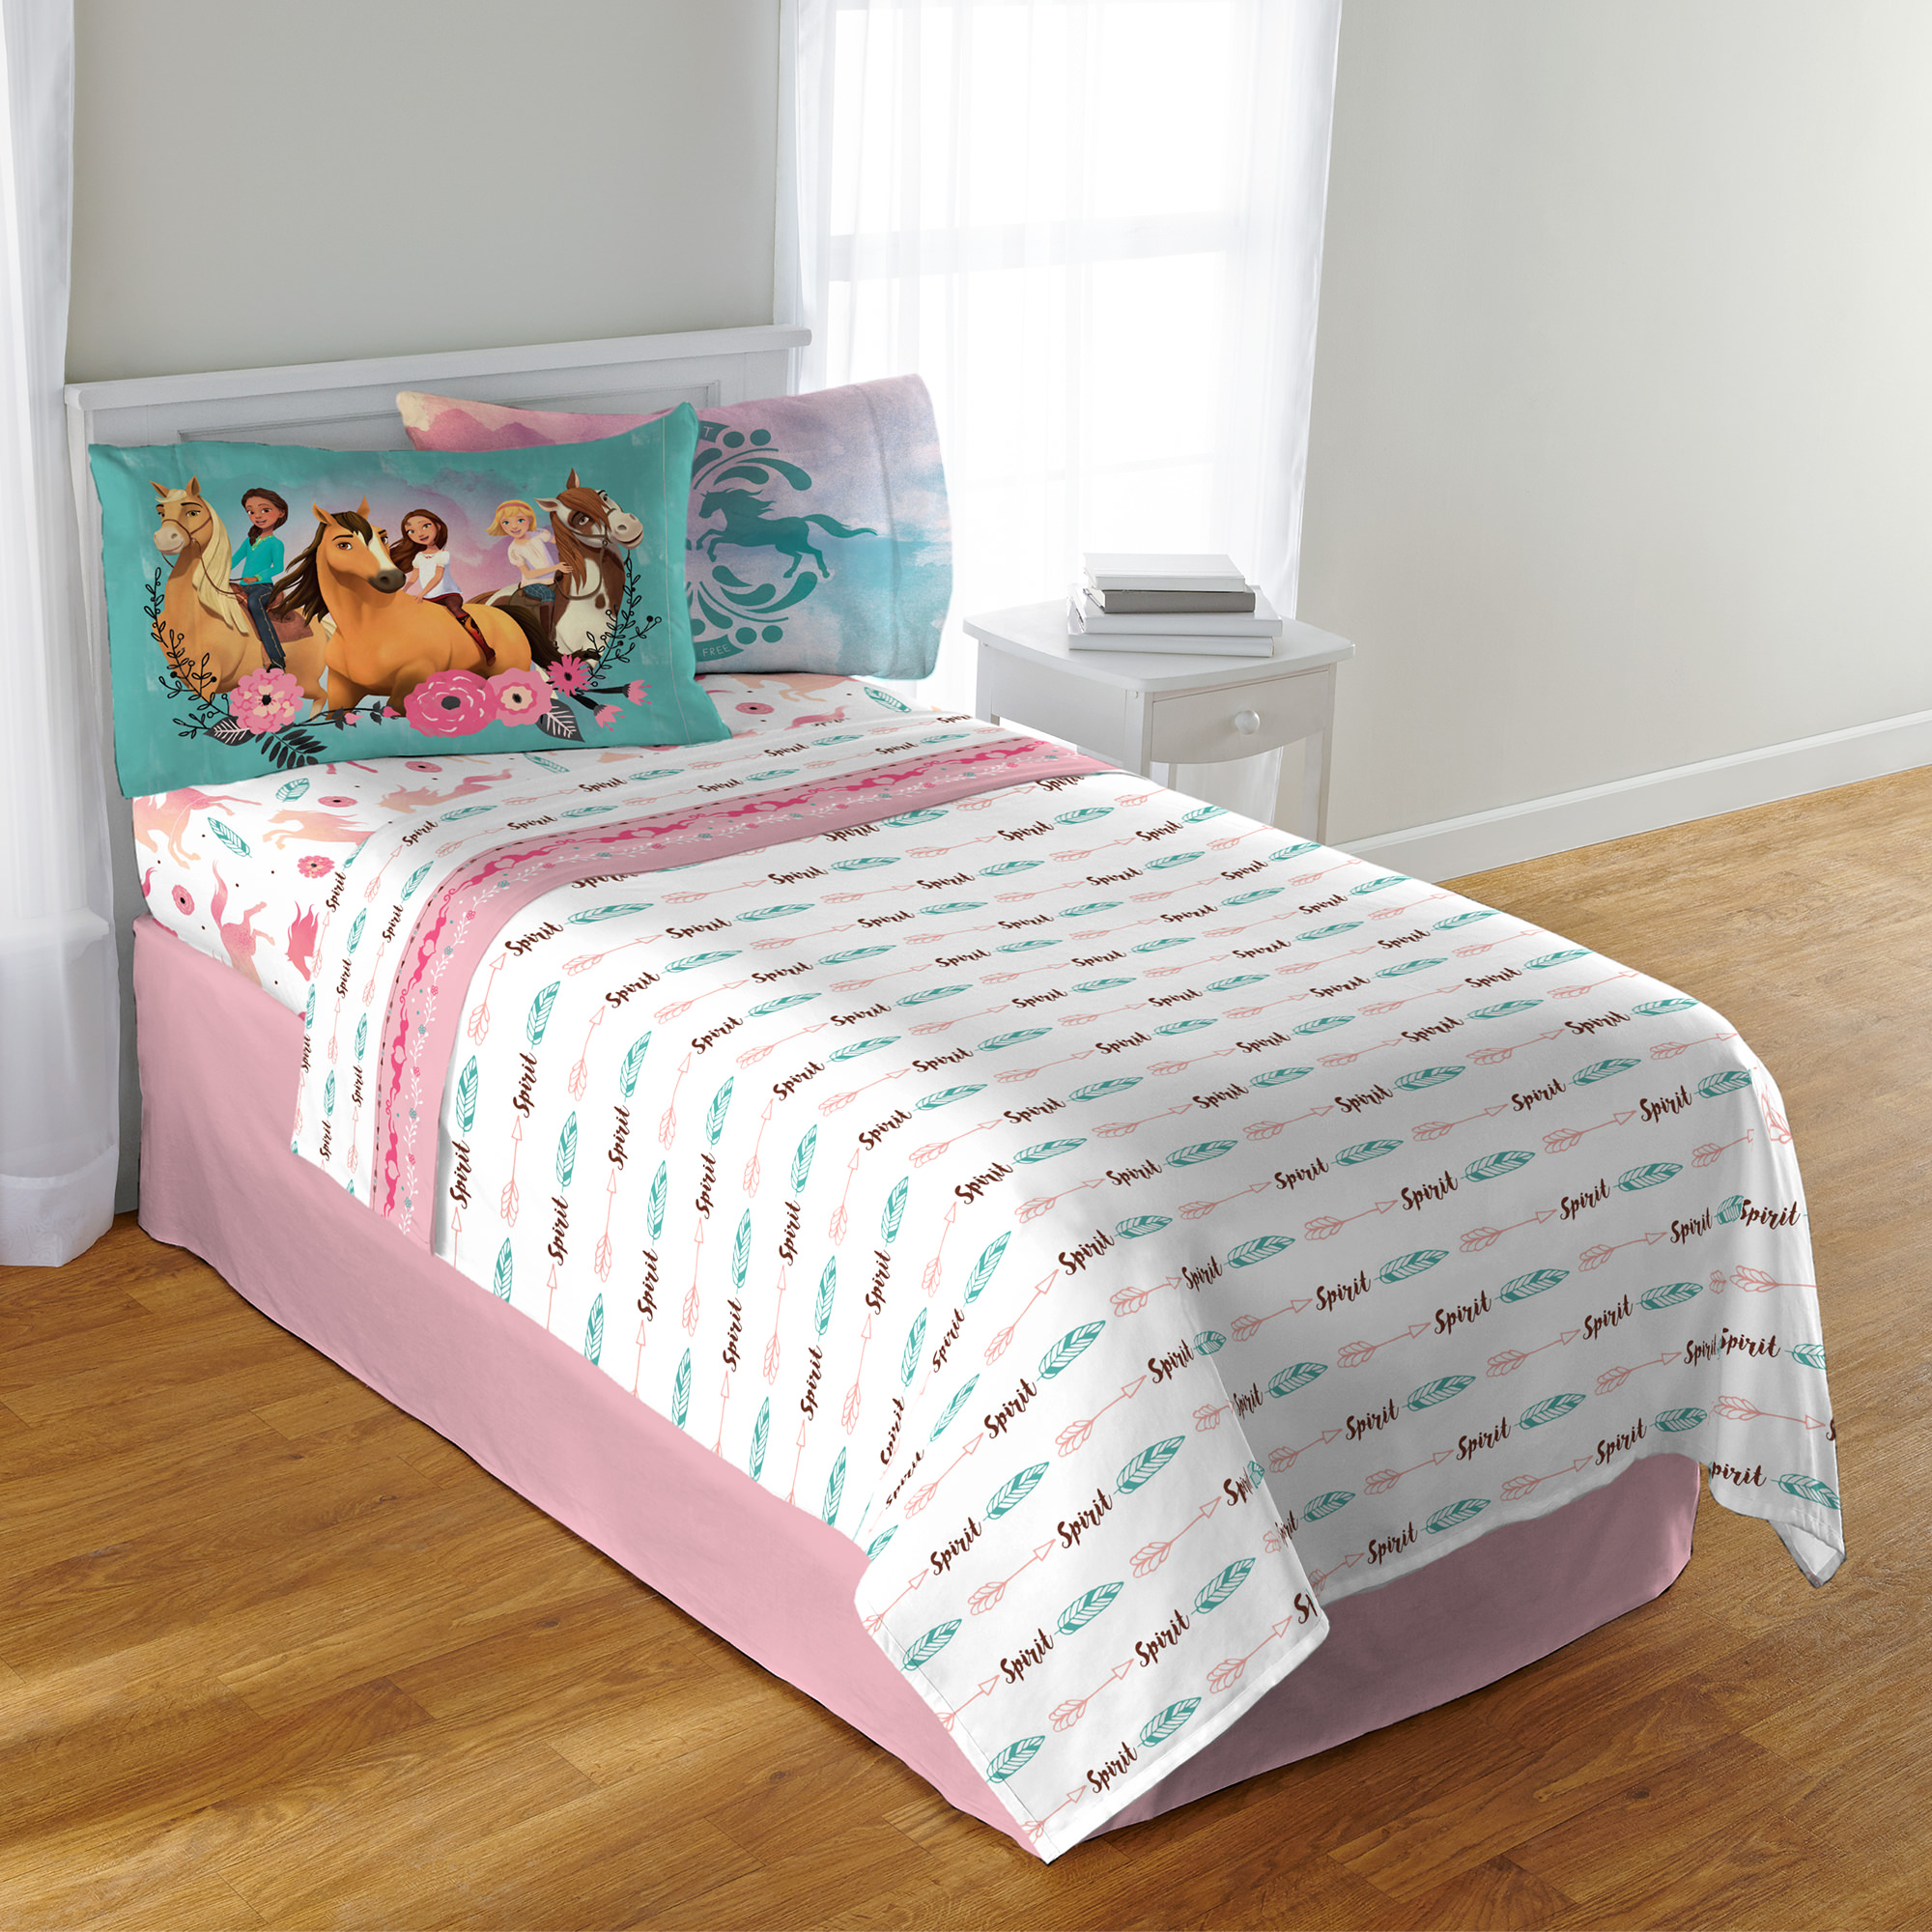 Dream Works Spirit 'Giddy Up' Kids Bedding SHeet Set, Twin by Franco Manufacturing